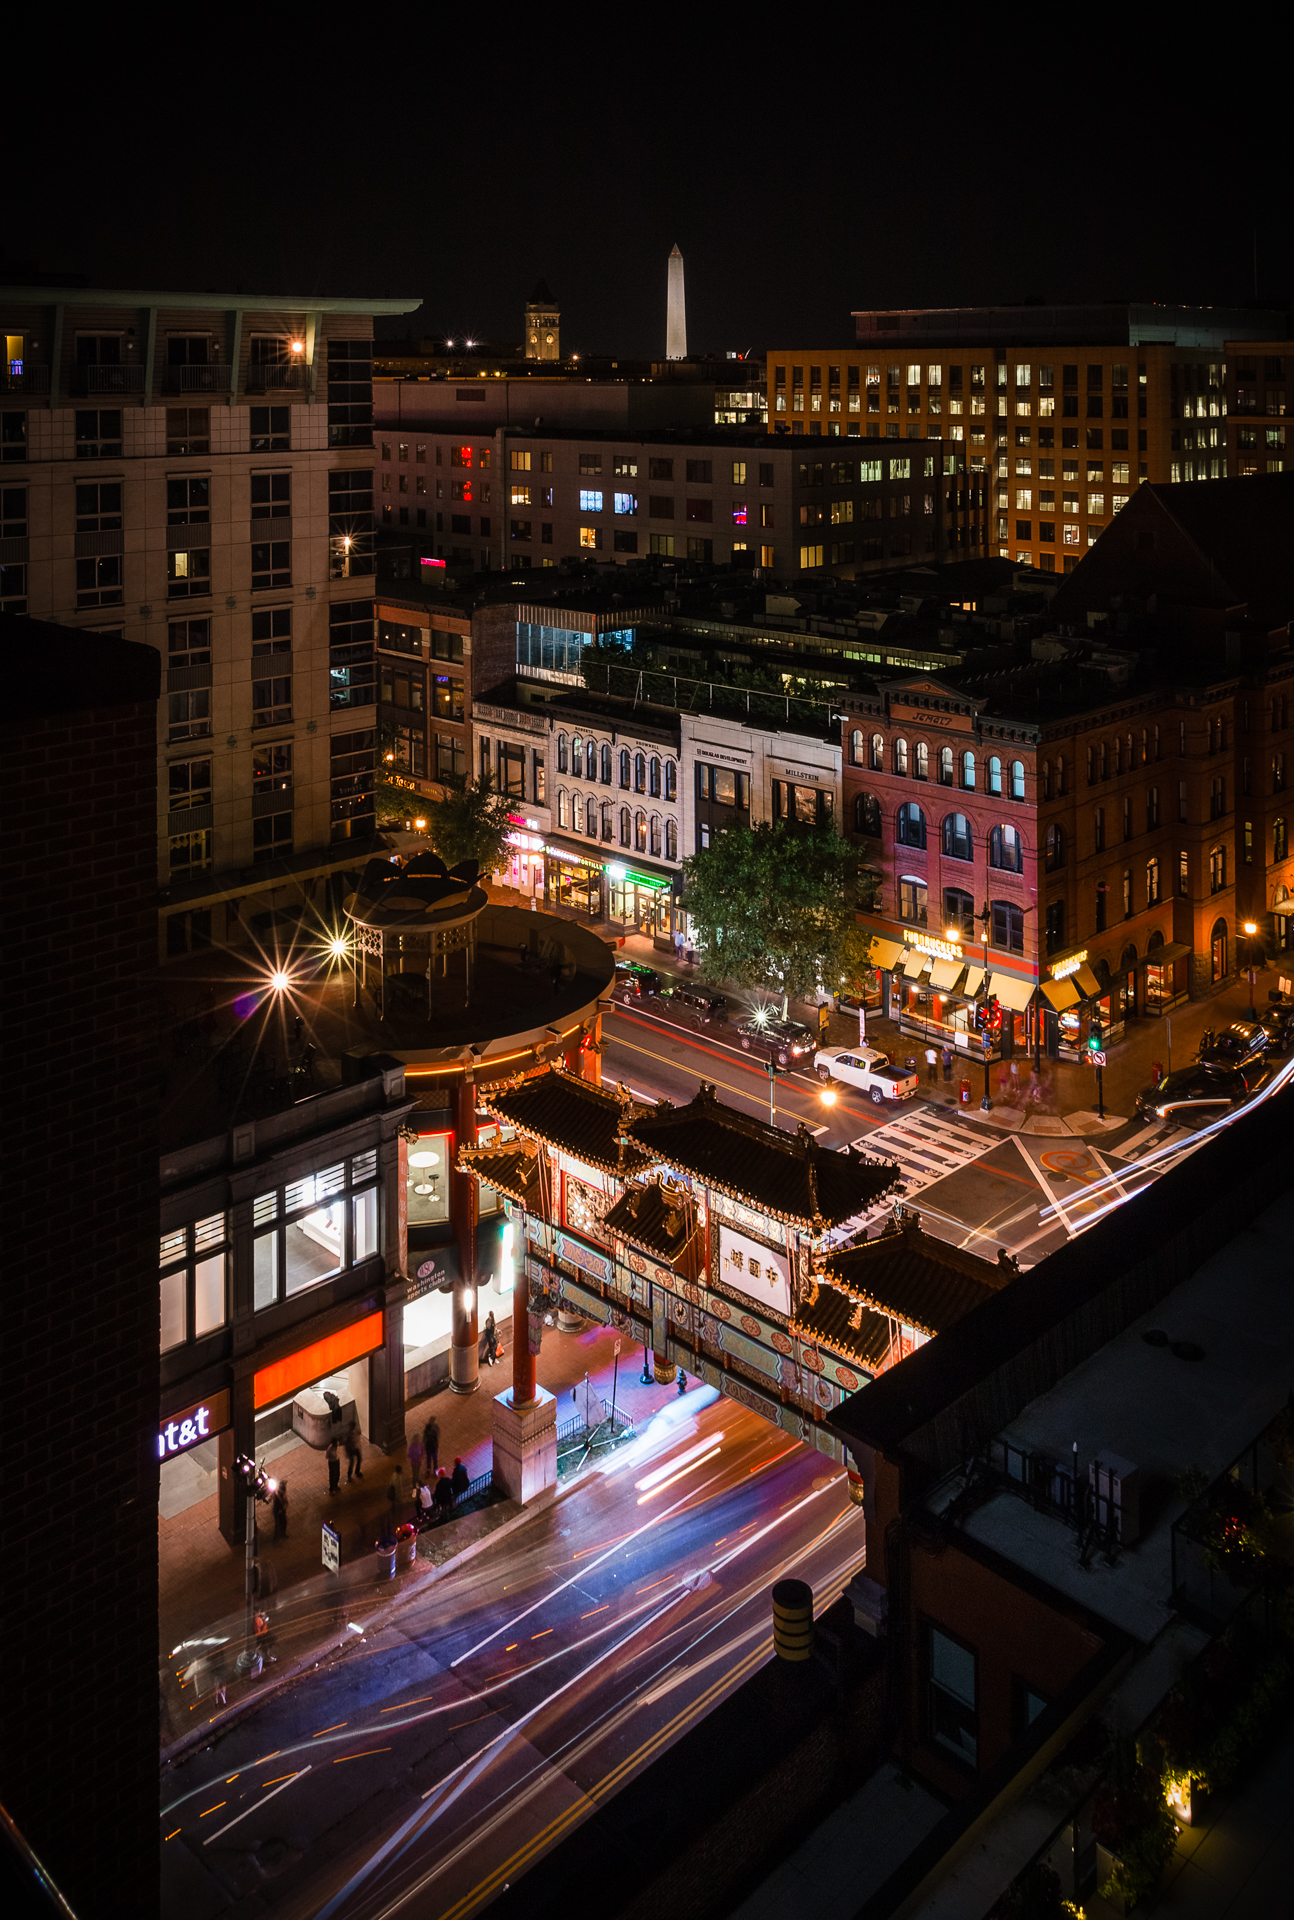 Chinatown Nights – Chinatown seen from above at night{&nbsp;}(Image: Zack Lewkowicz)<p></p>